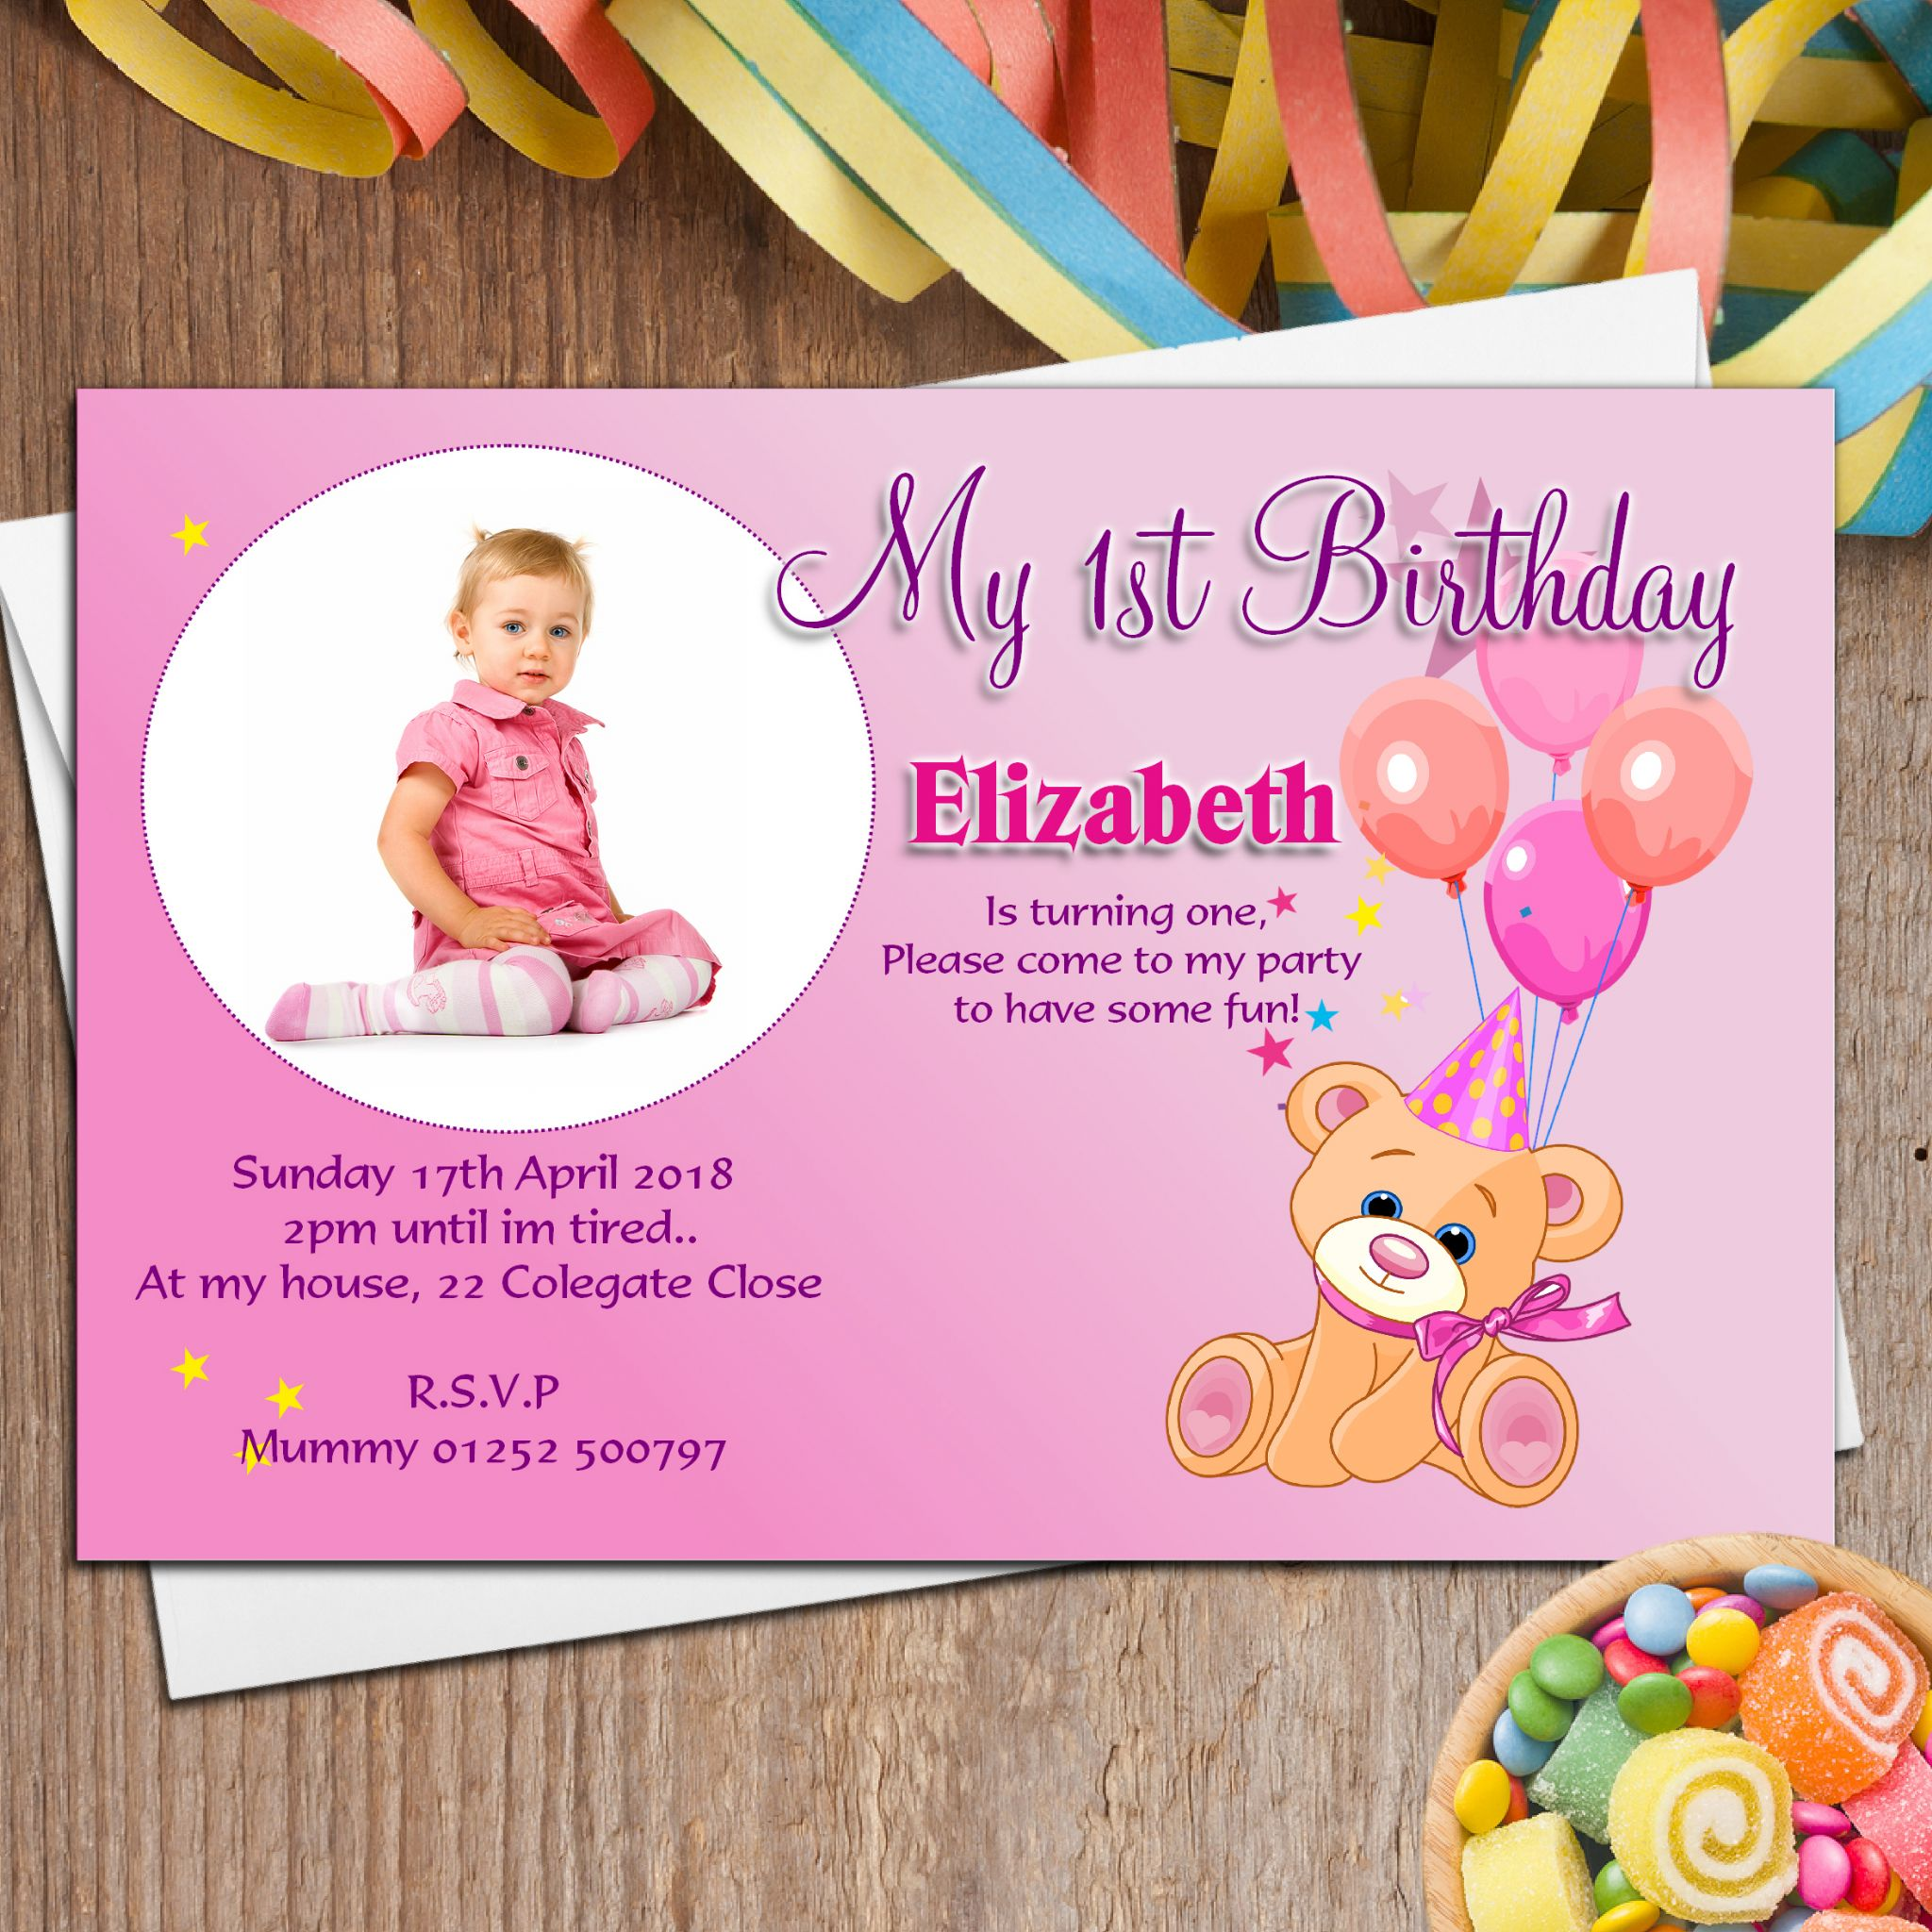 1st birthday invitation cards in telugu ; Cool-Photo-Birthday-Invitations-To-Design-Birthday-Invitation-Wording